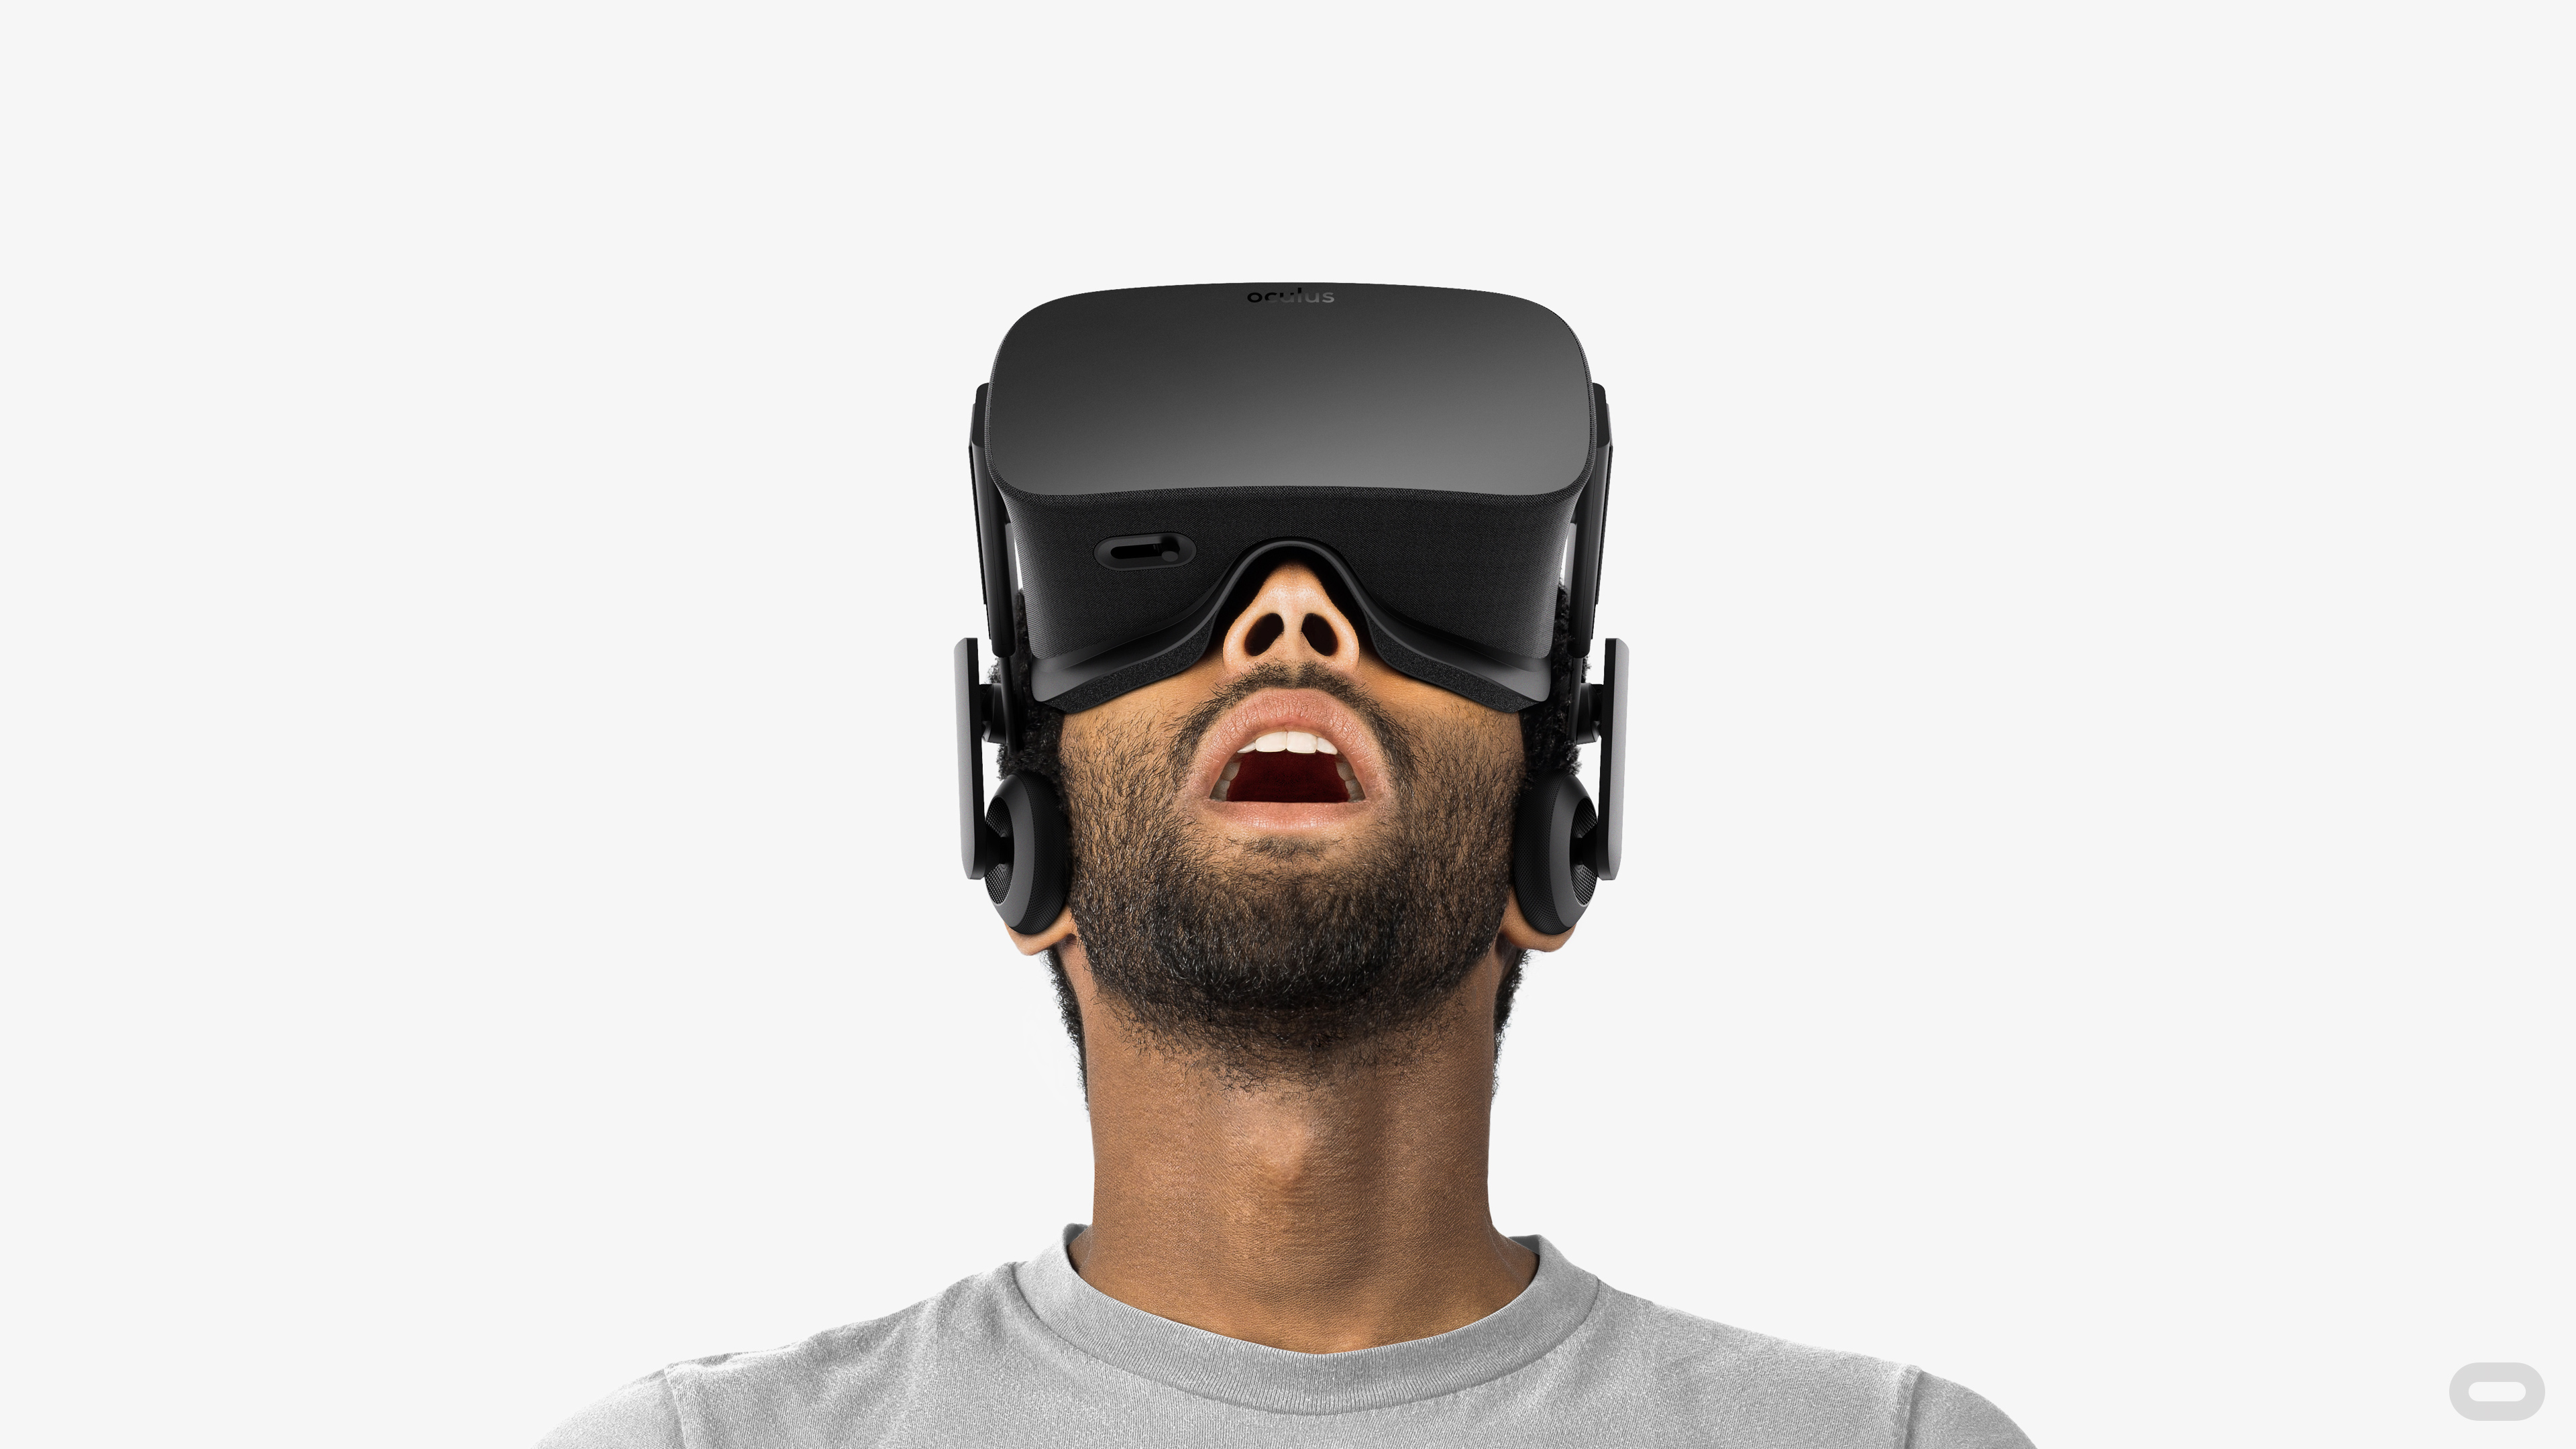 Why you should not buy the Oculus Rift